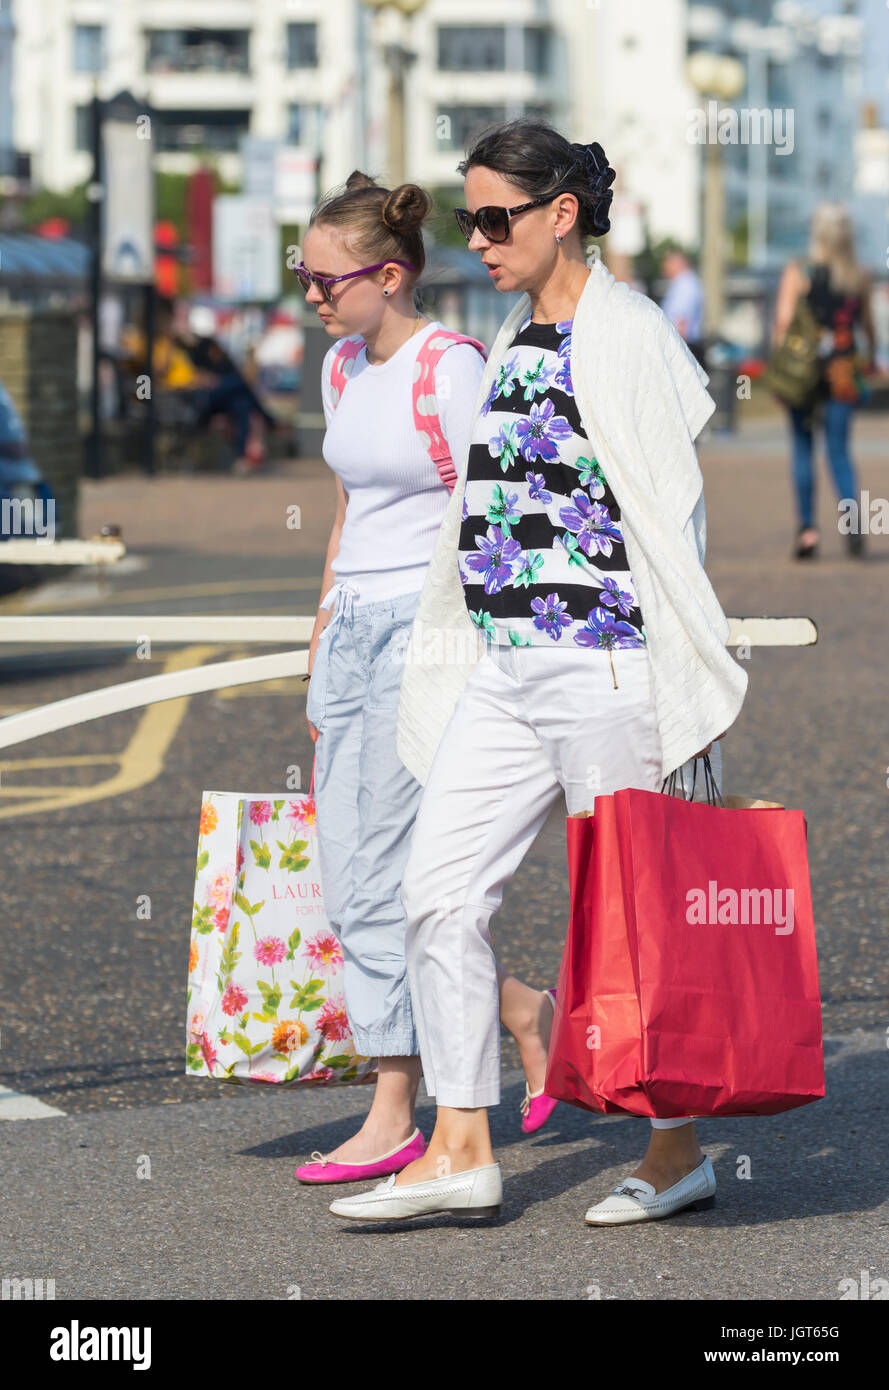 Mother and Daughter out together on a shopping spree, carrying shopping bags. - Stock Image